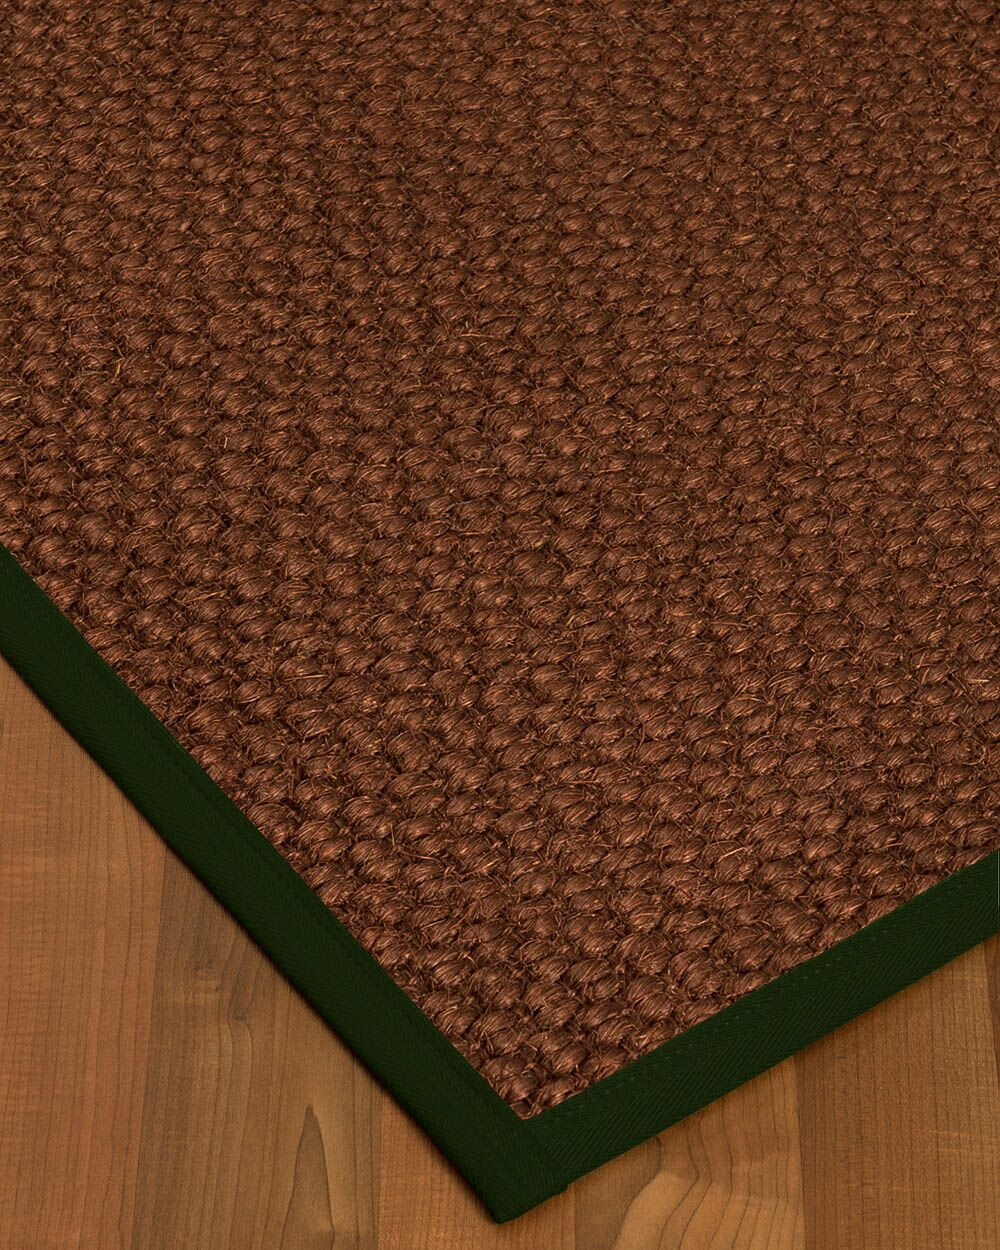 Kerrick Border Hand-Woven Brown/Moss Area Rug Rug Size: Rectangle 8' x 10', Rug Pad Included: Yes